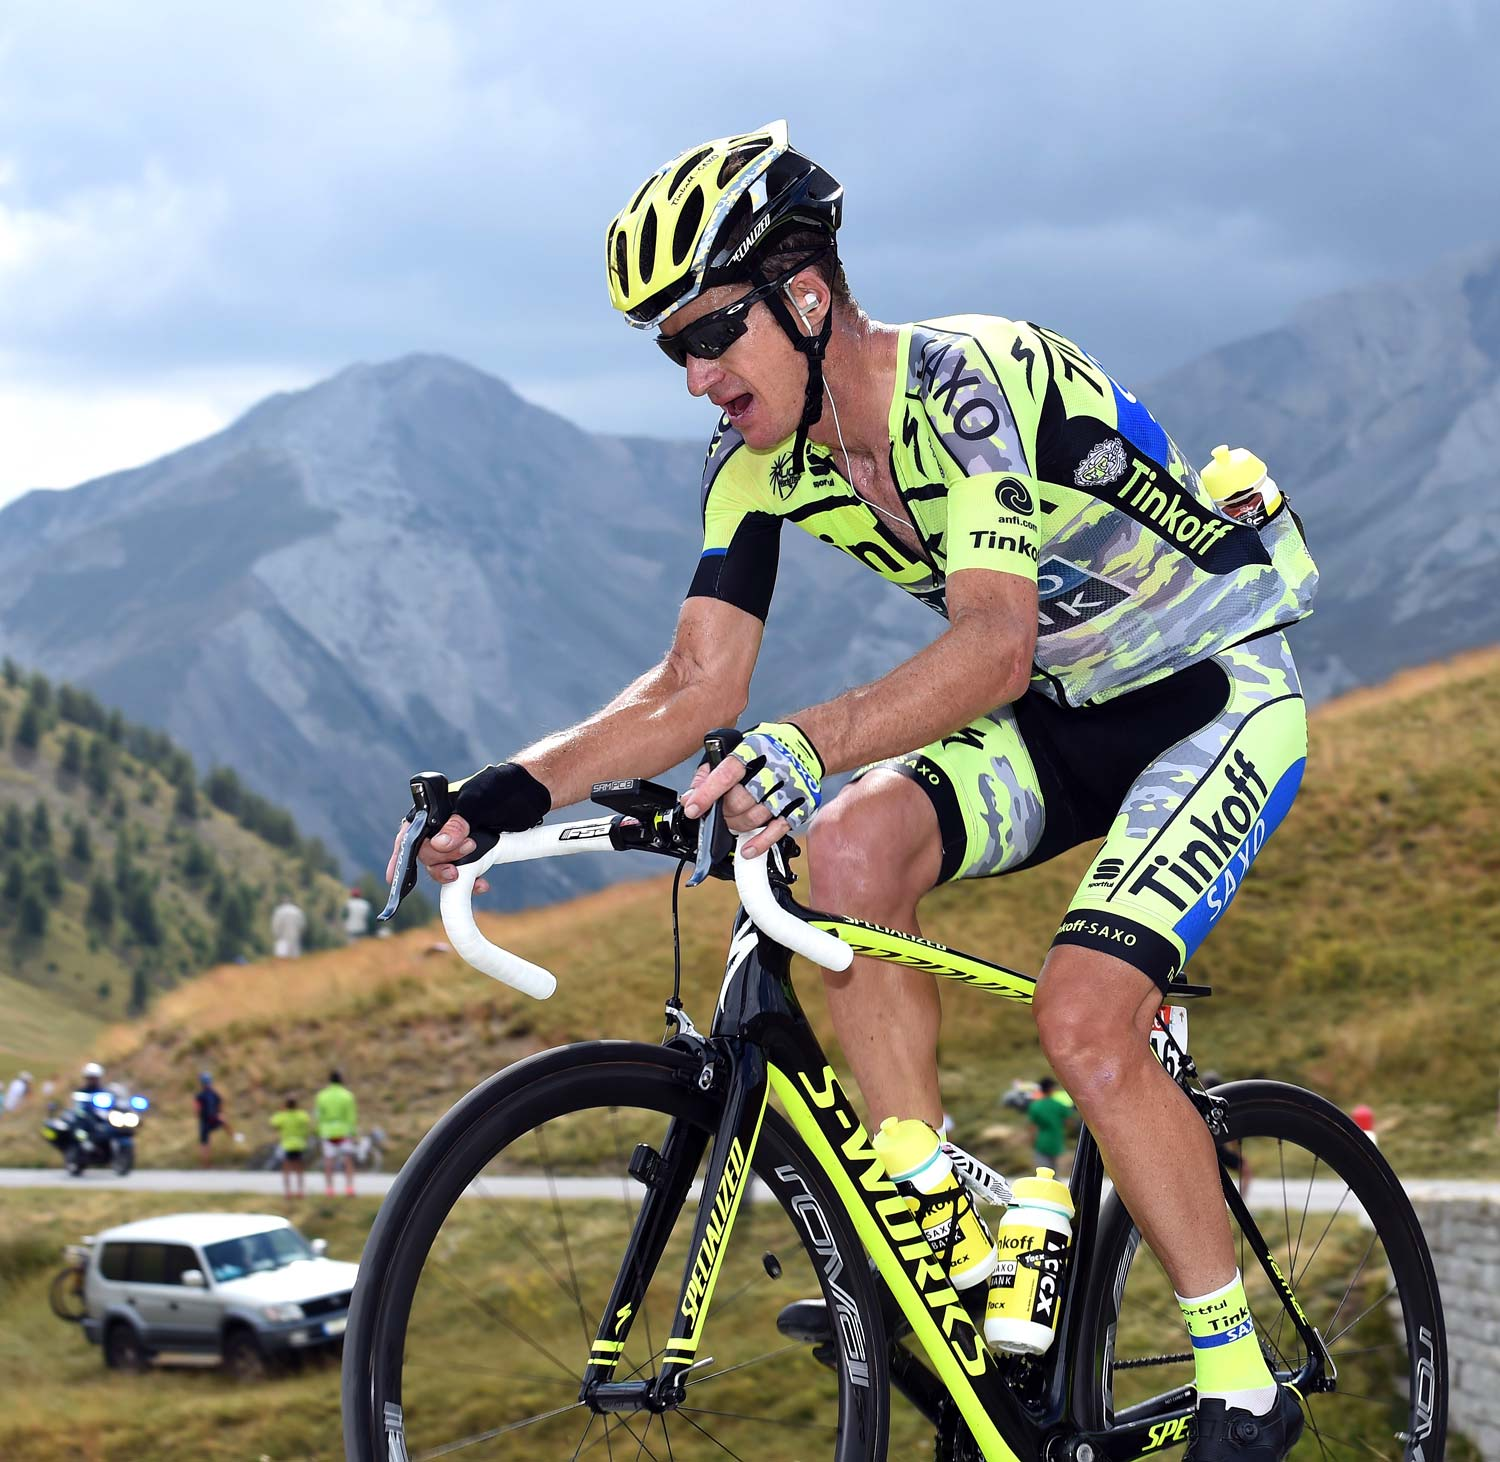 Rogers climbs a col in stage 17 of the 2015 Tour de France. Photo: Graham Watson